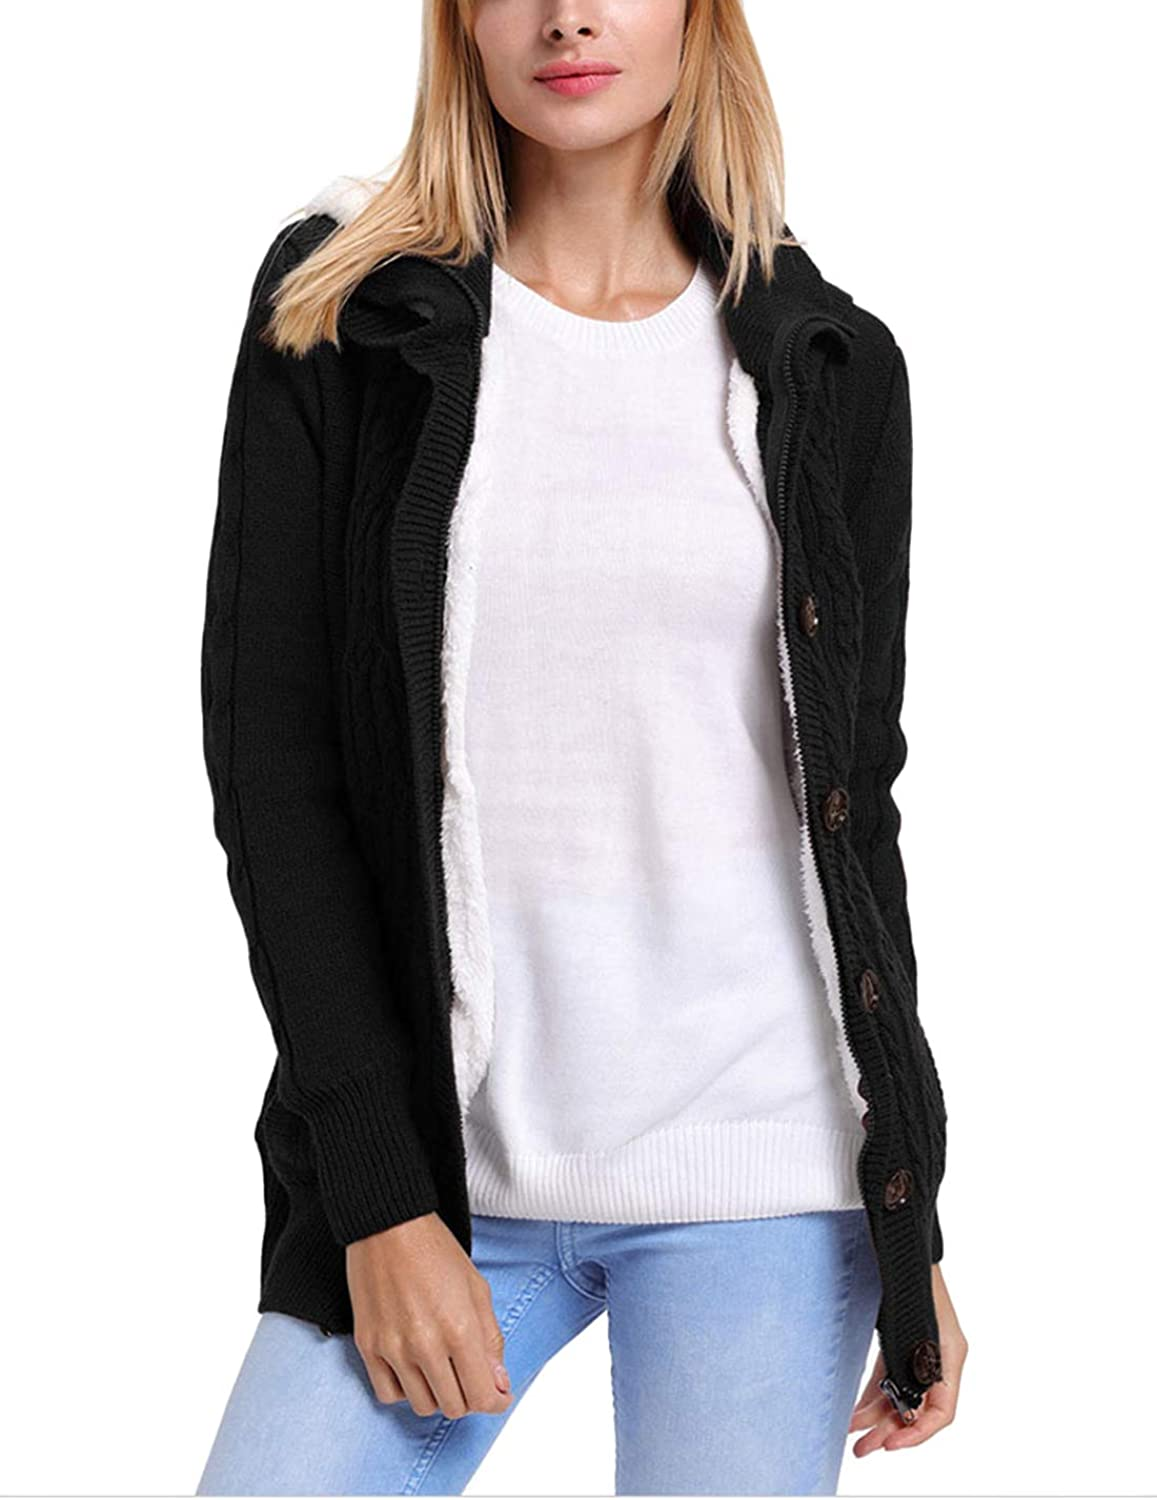 Yeokou Women's Casual Mid Long Sherpa Lined Button Up Hooded Cardigan Sweaters